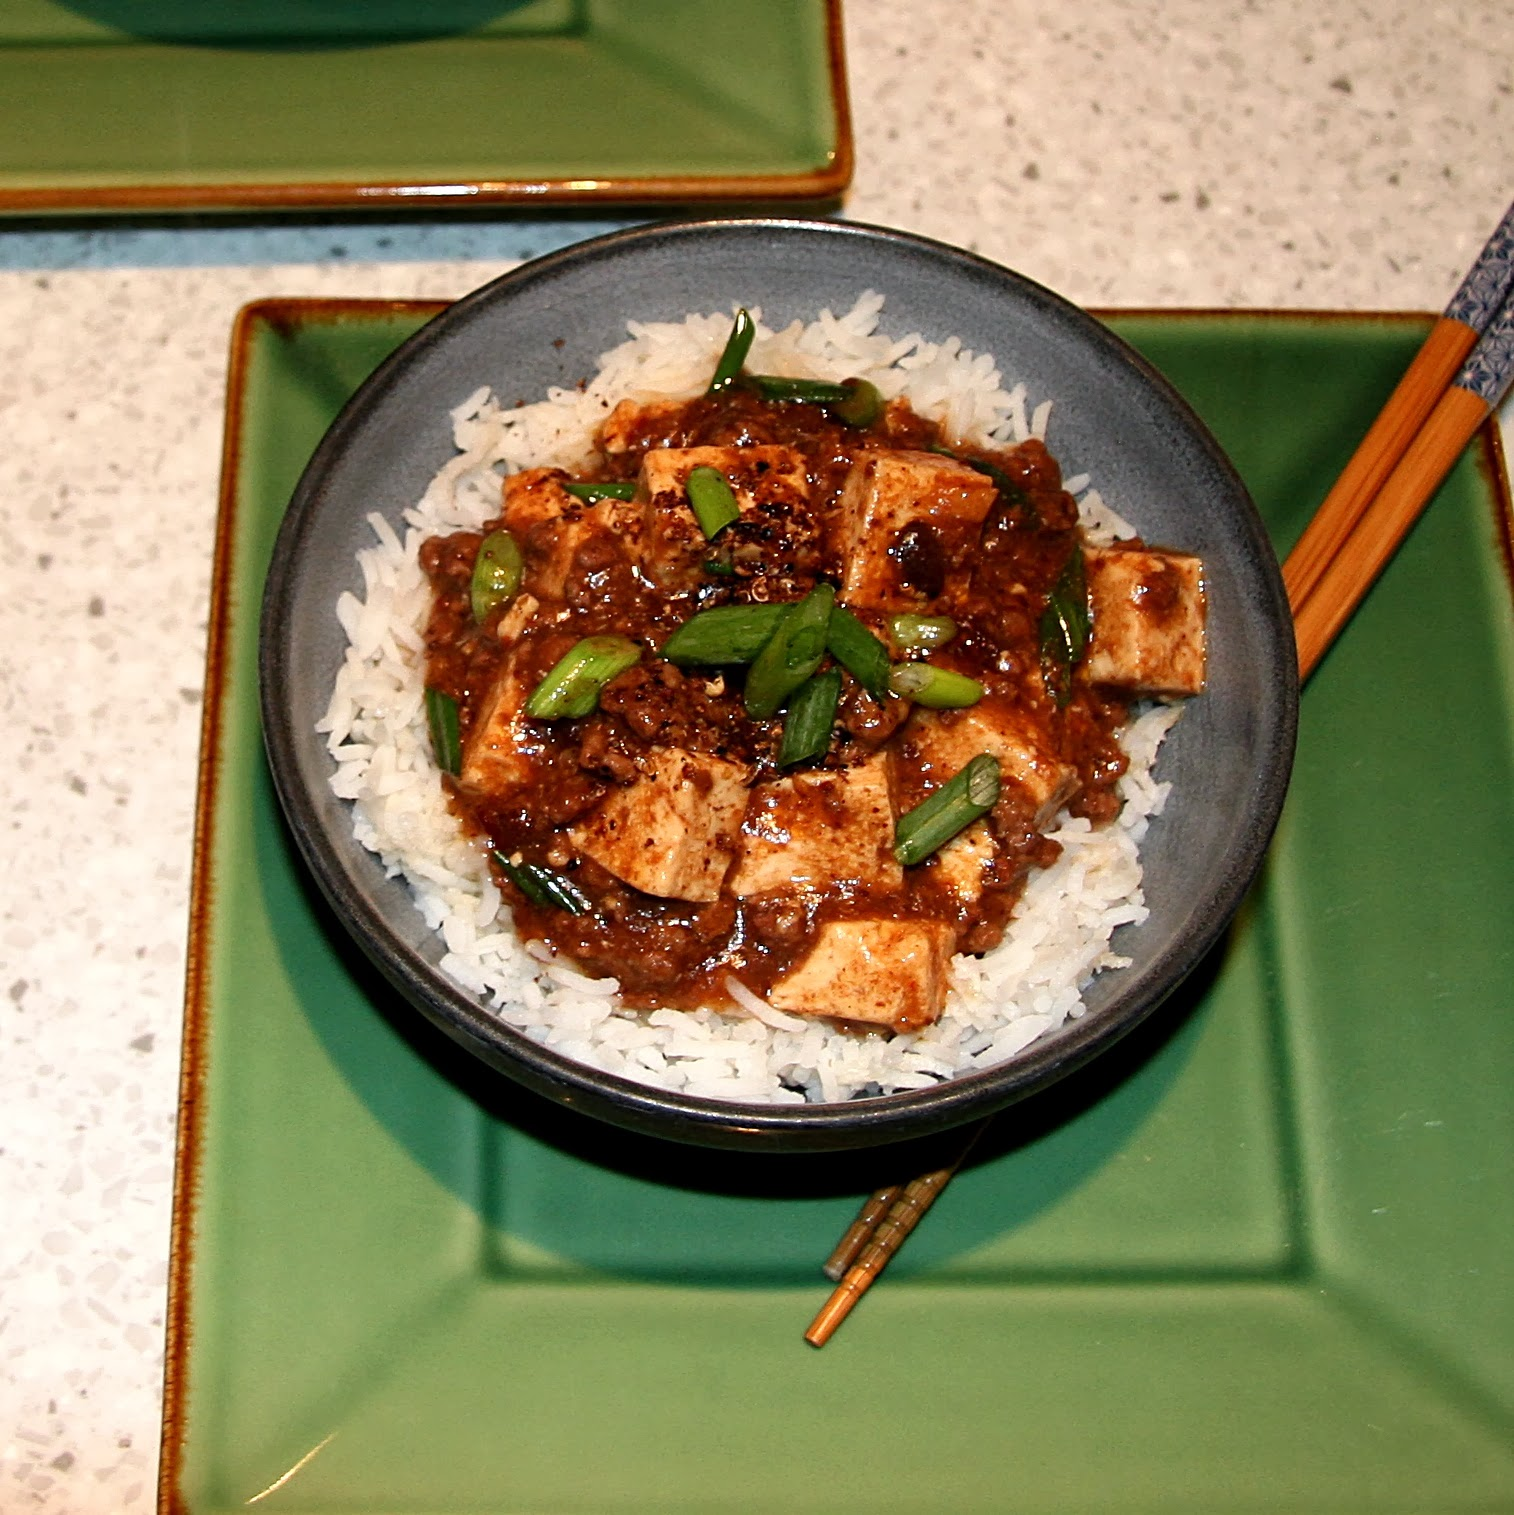 37 Cooks: Spicy Tofu with Beef and Szechuan Peppercorns